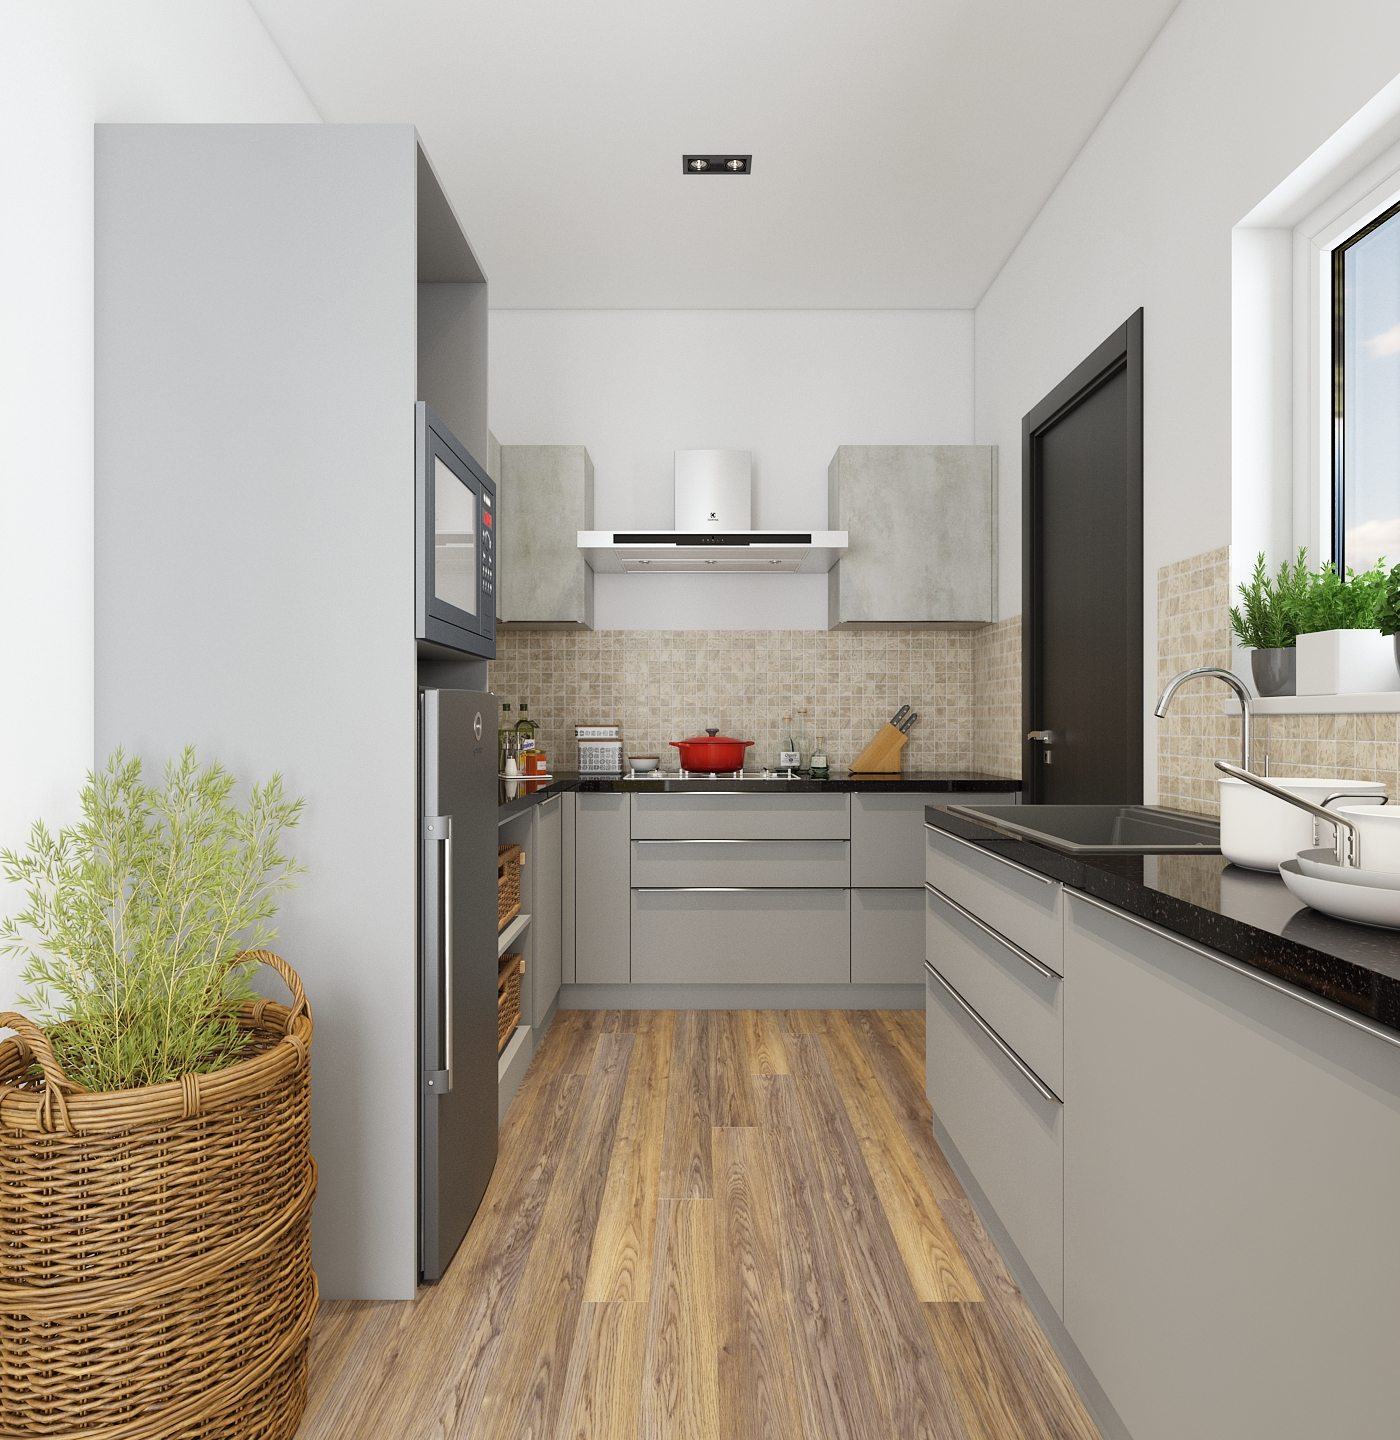 5 Stylish Ideas for Small Kitchens or Mini Kitchens ... on Small Kitchen Ideas  id=83079